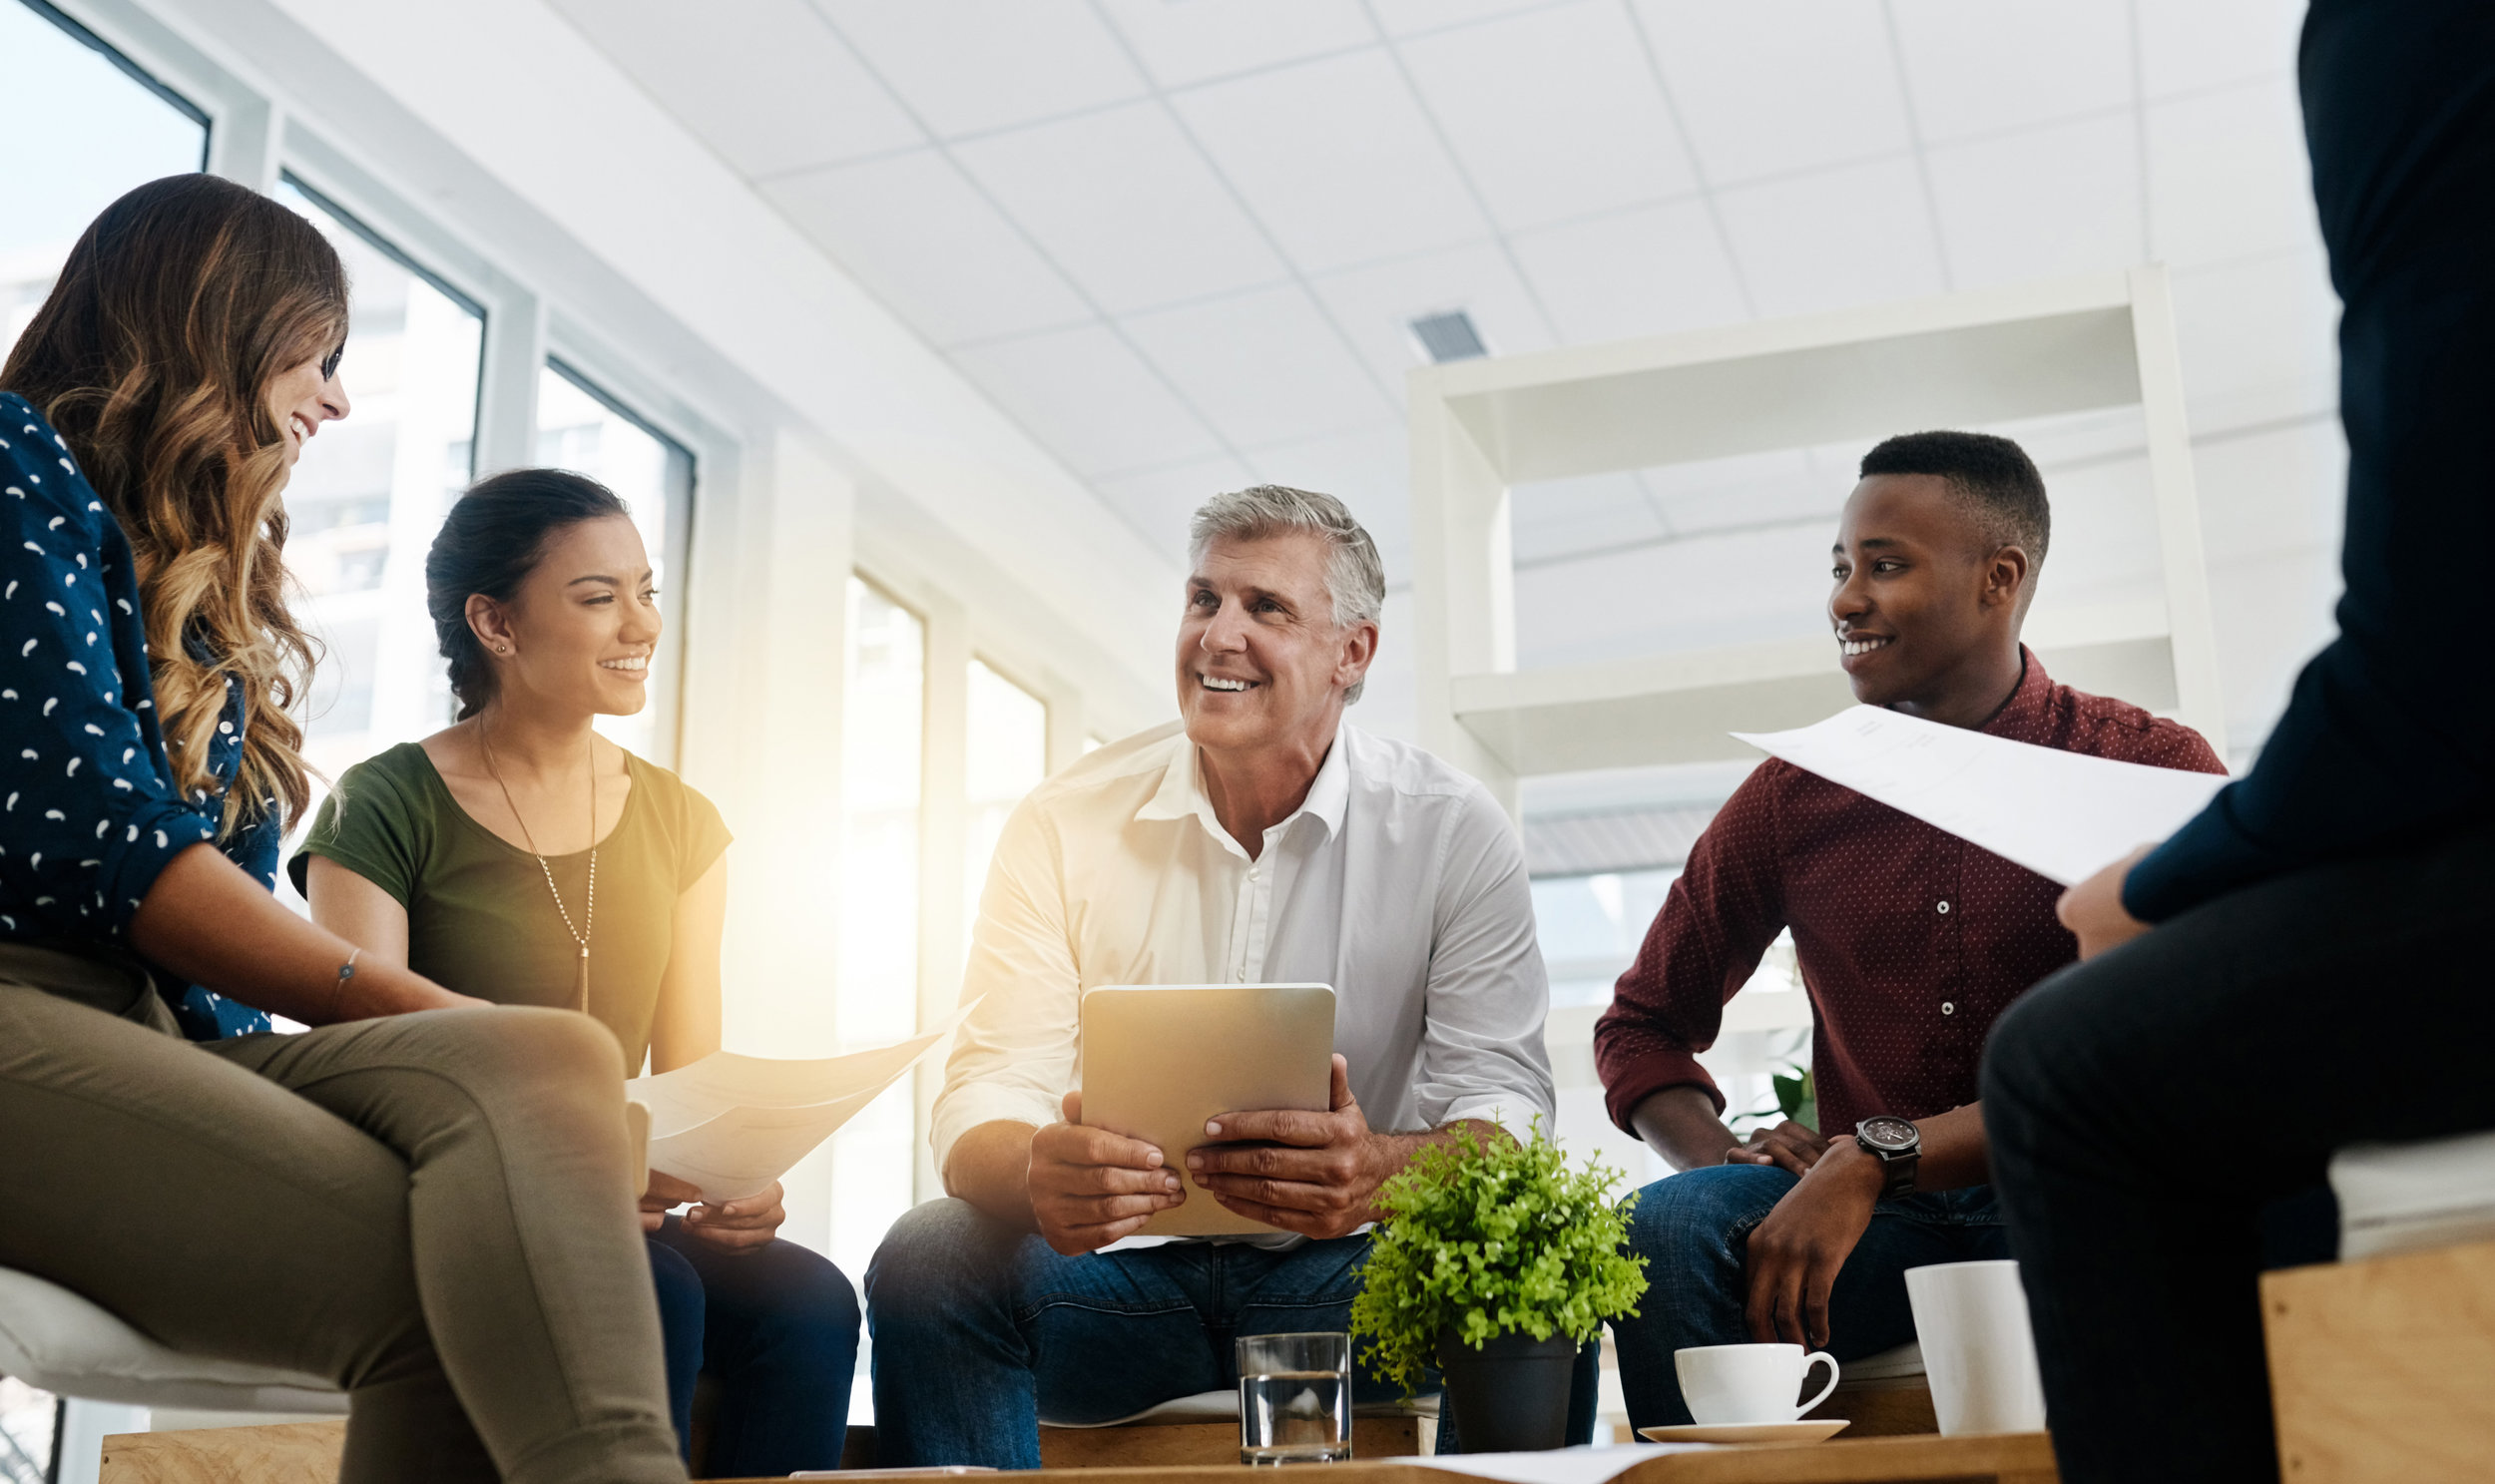 About IRET - We understand the importance of extending a highly professional level of service to all of our Residents - service that adds value to their lives and turns their apartment into a homeAbout IRET